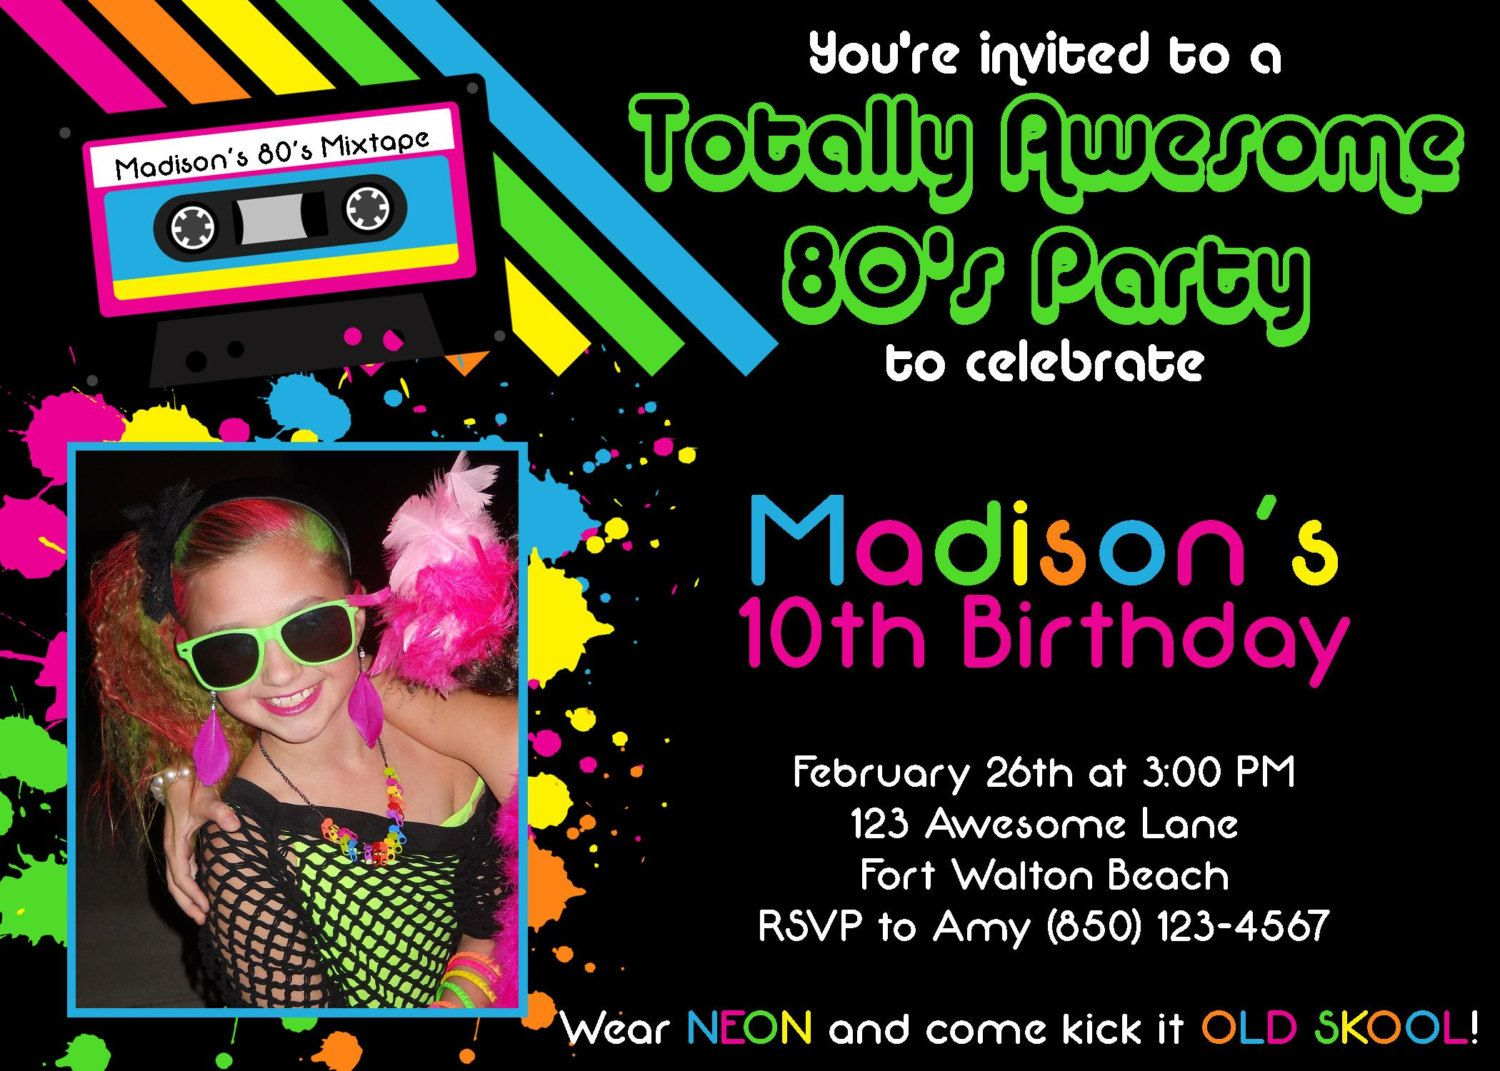 Awesome 80's Party Invitation - Girl Birthday PRINTABLE. $10.00 USD, via Etsy.